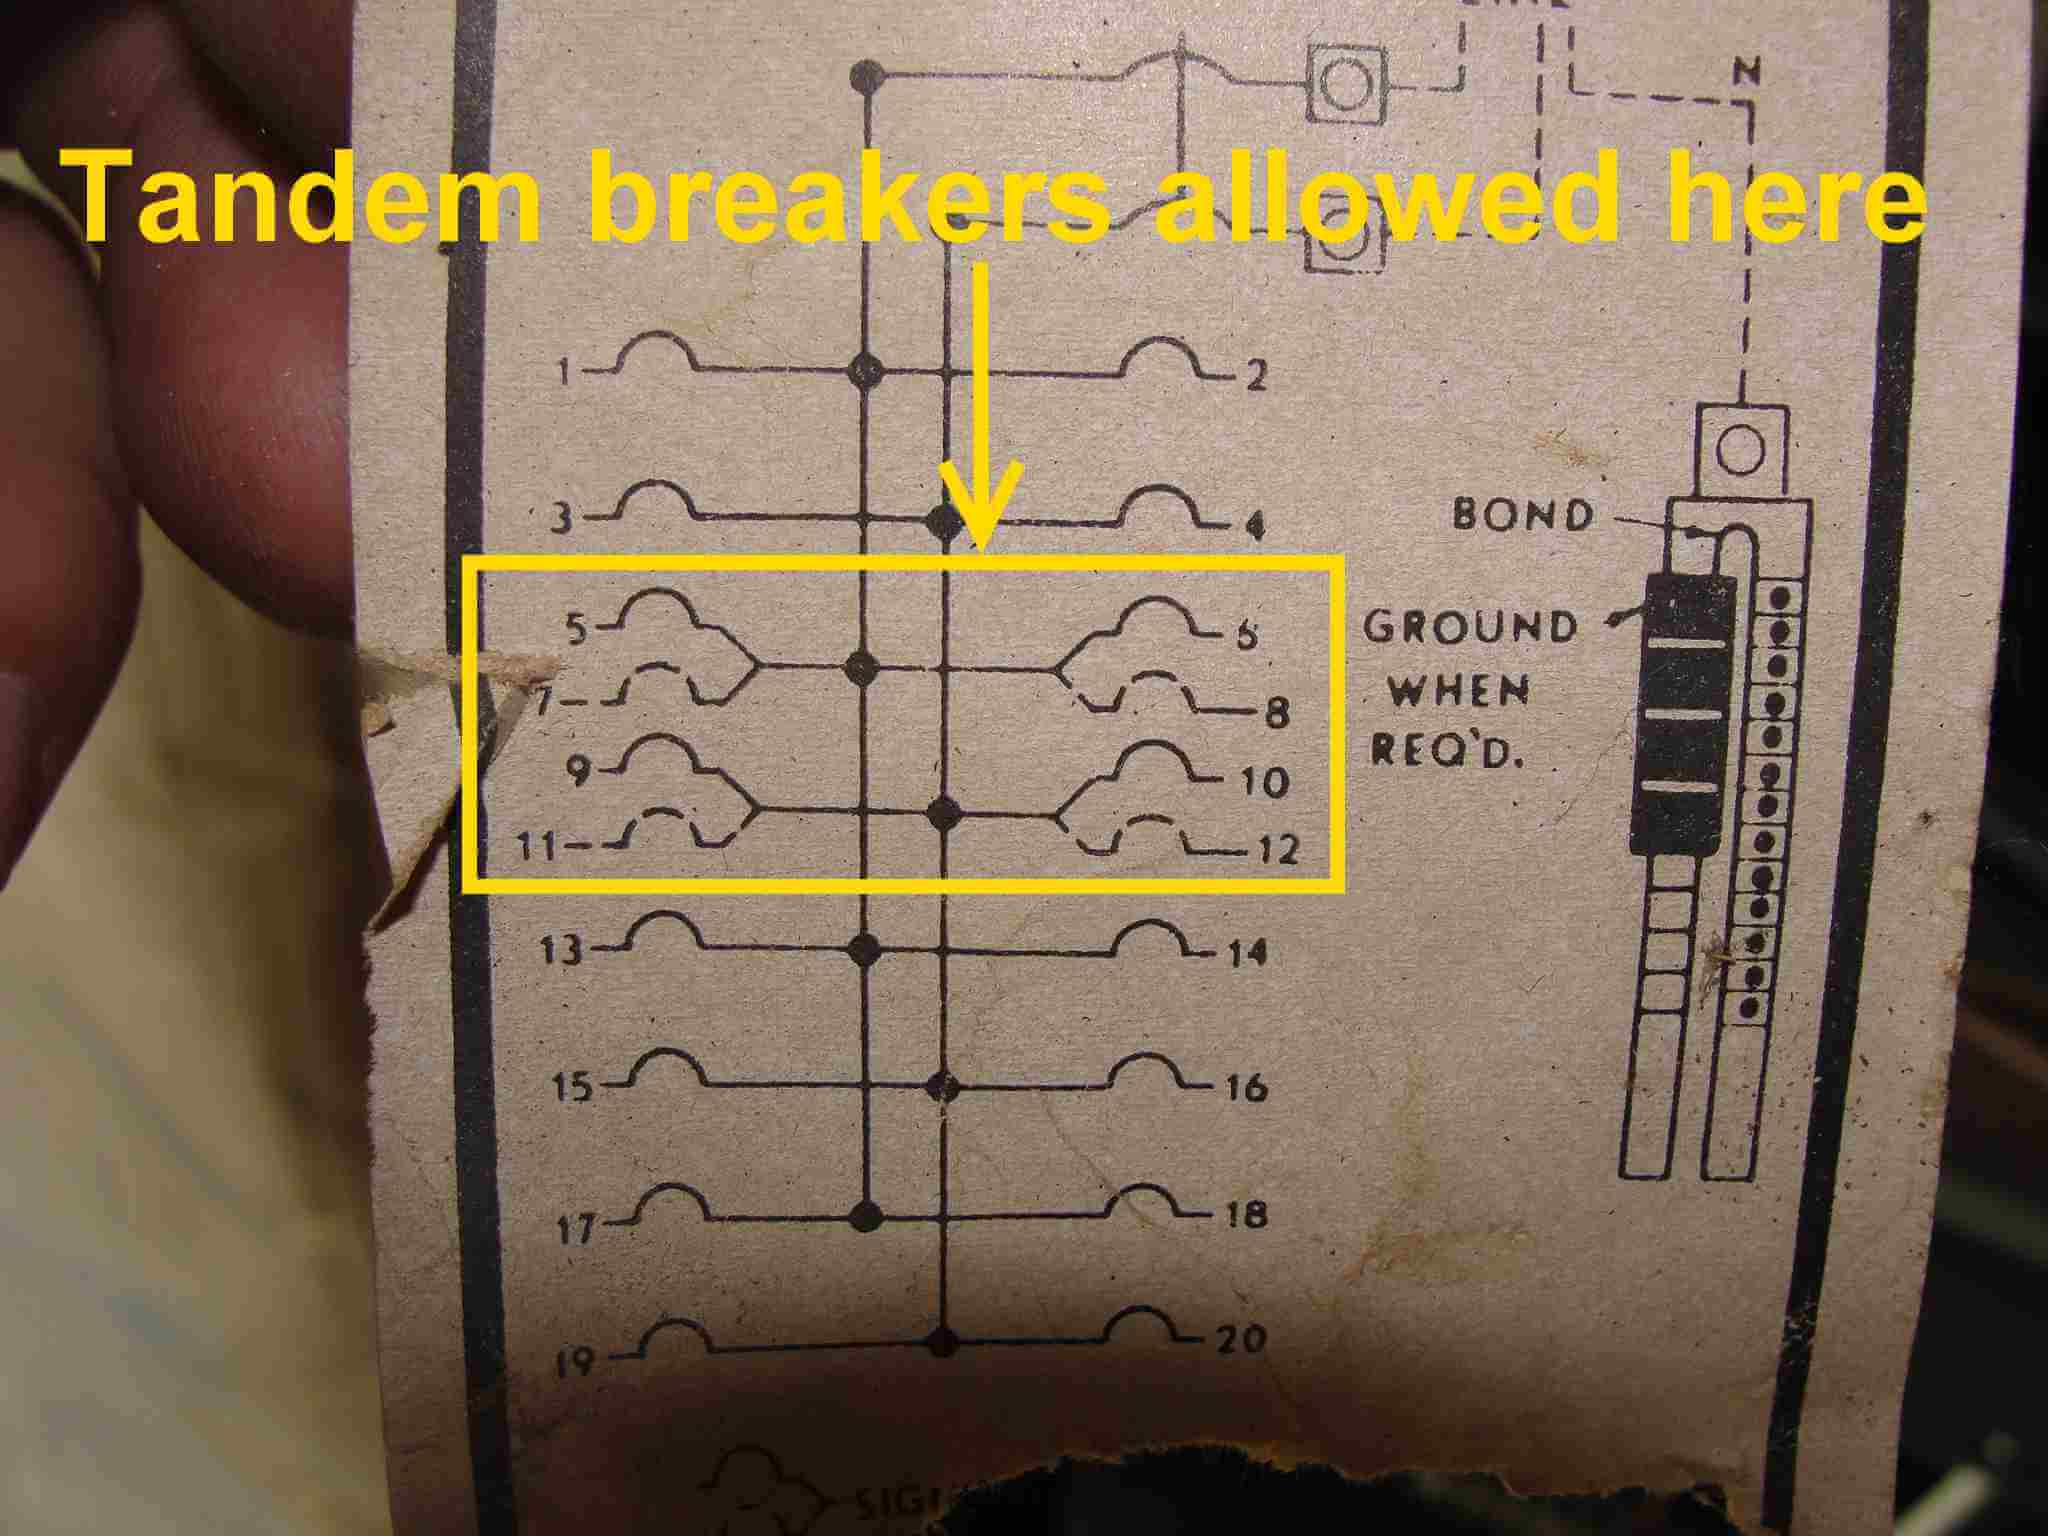 panelboard diagram 2 inspecting tandem circuit breakers aka 'cheaters'  at bayanpartner.co